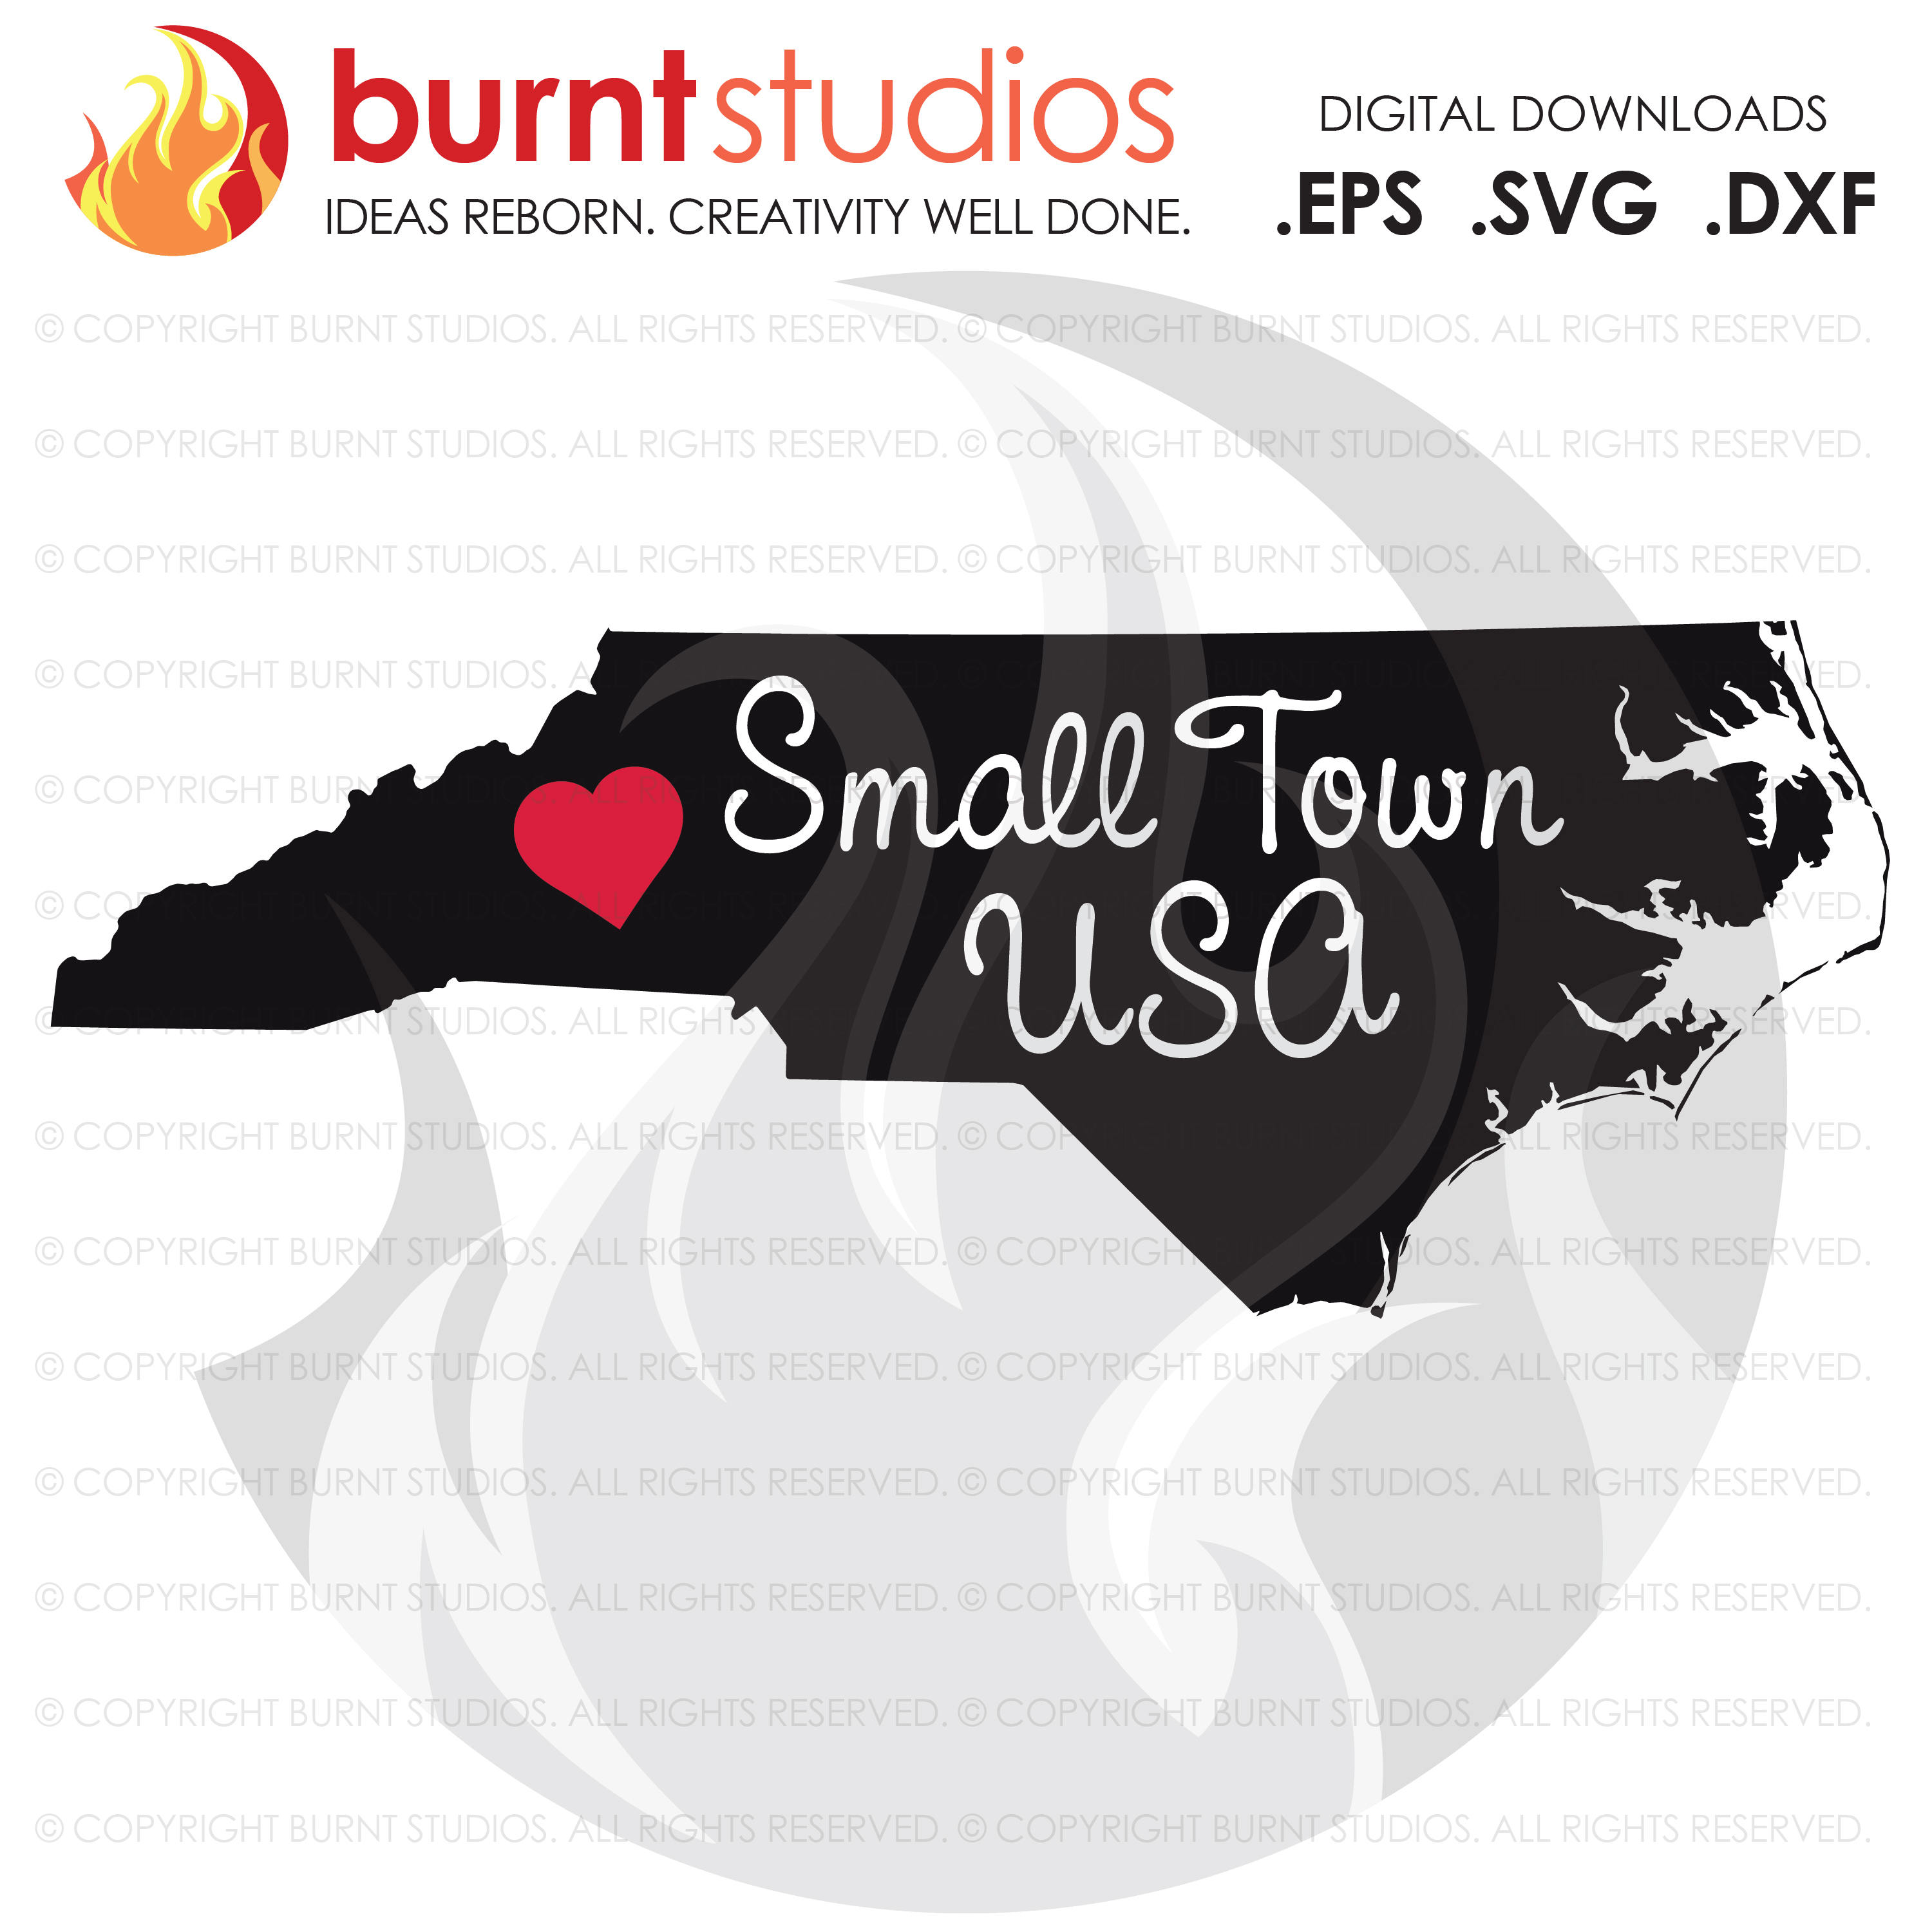 Digital SVG Cutting File, North Carolina State Outline, Local, Small Town USA, Raleigh, Charlotte, Winston Salem, Svg, Png, Dxf, Eps